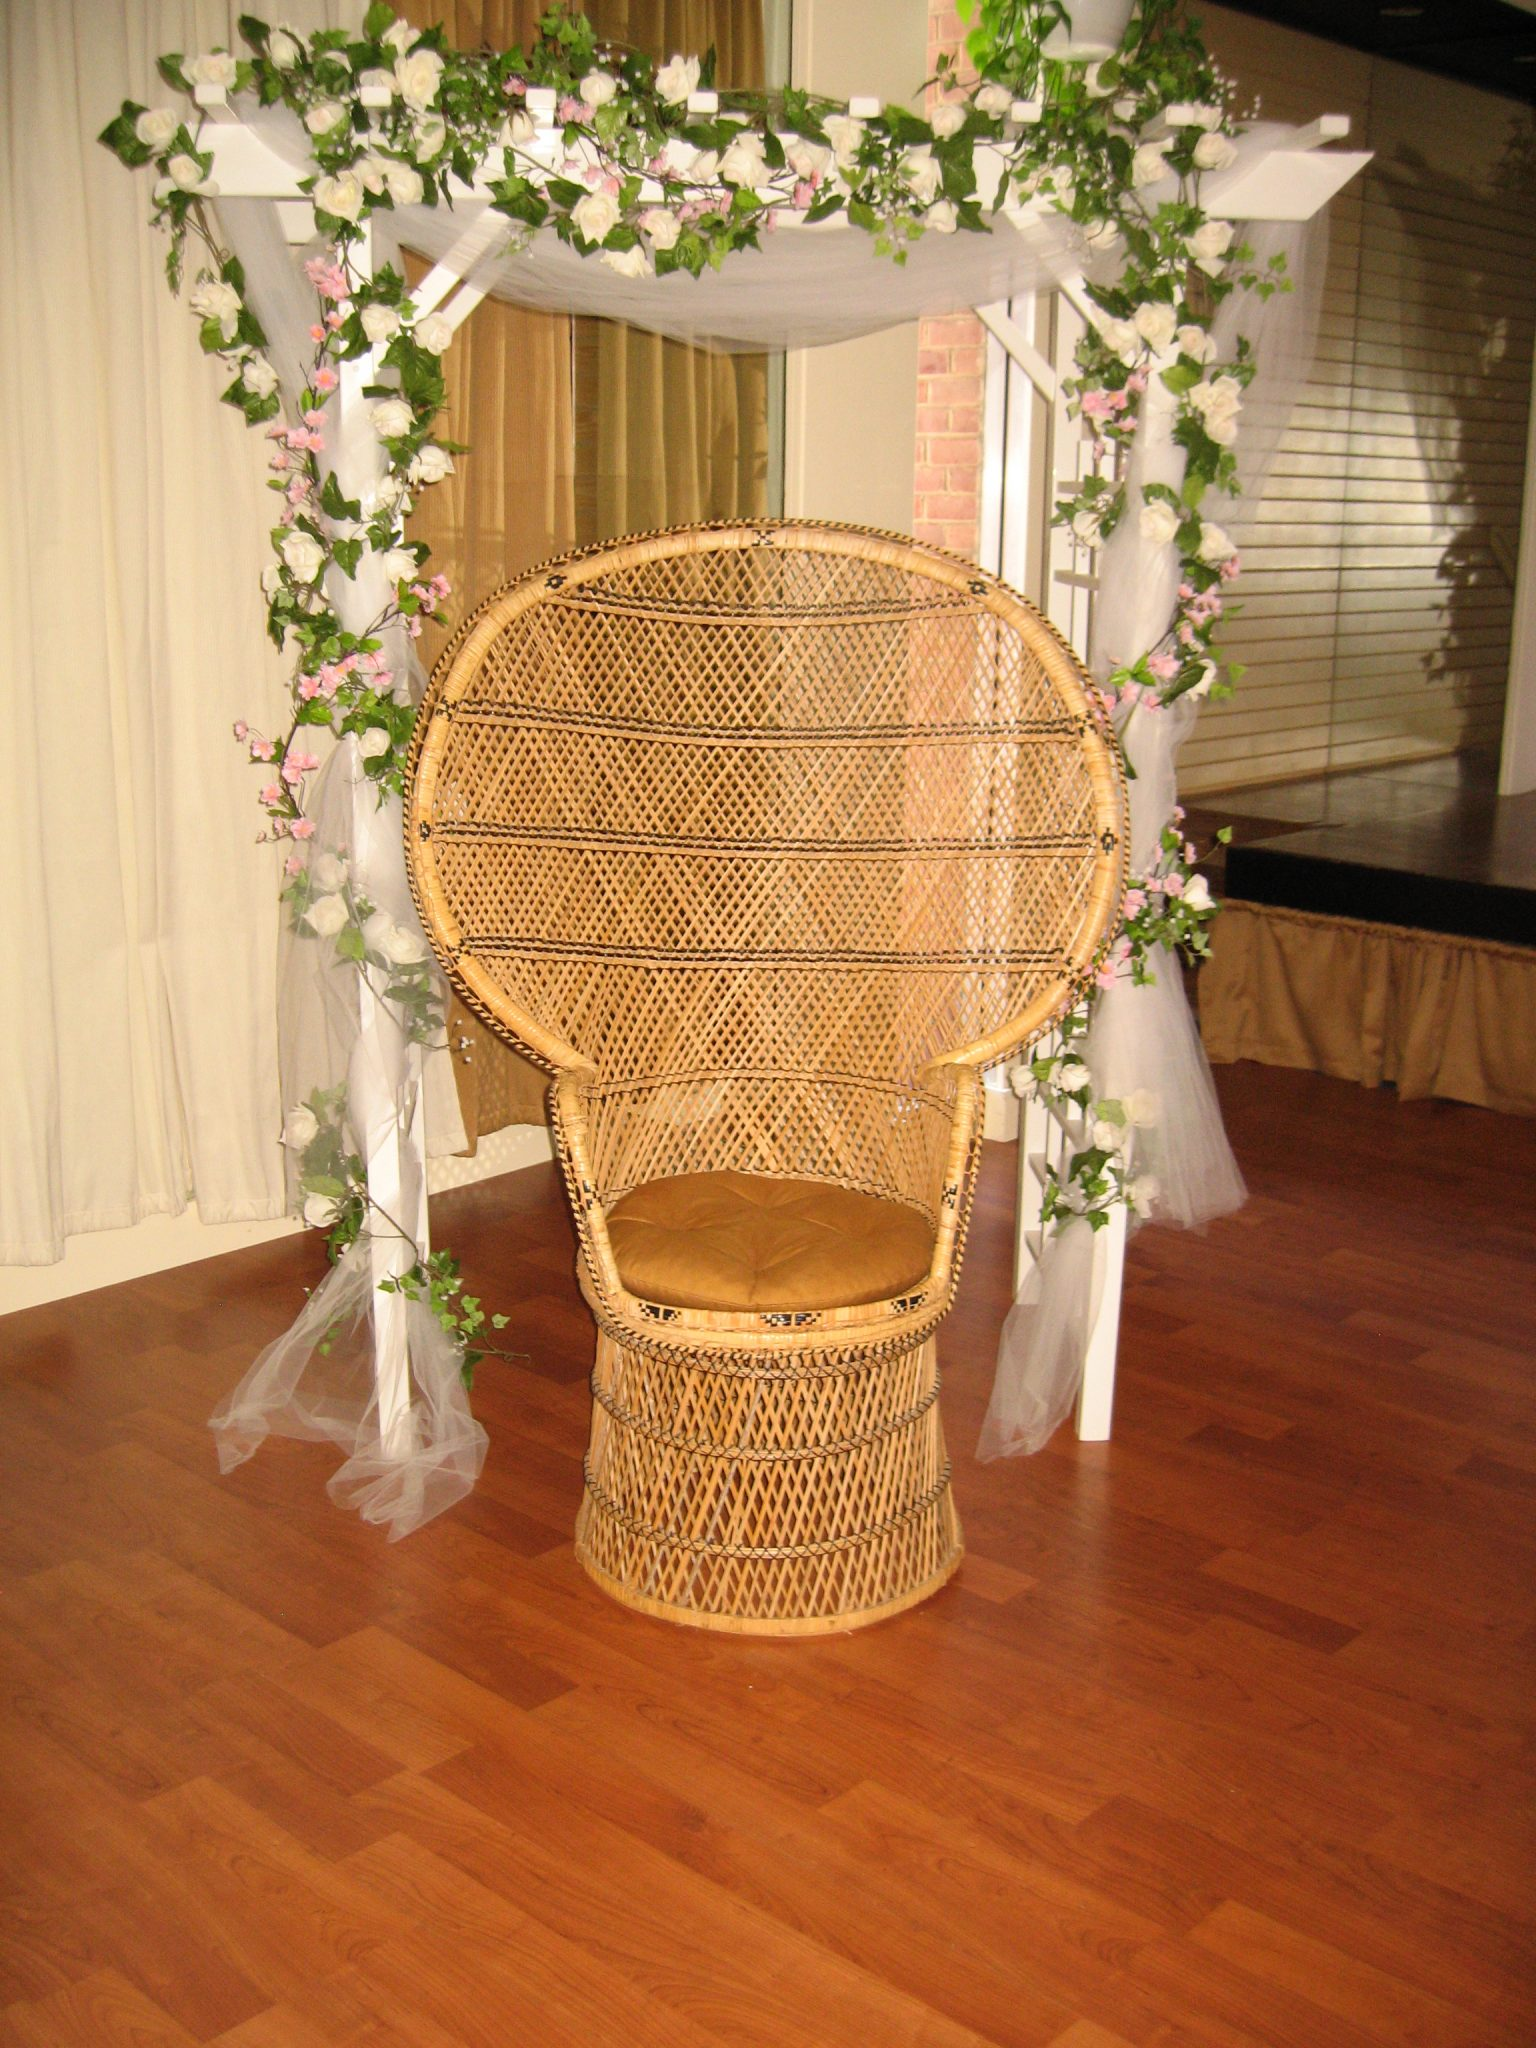 Baby Shower Chair Rentals Baltimore 39s Best Events Wedding Rentals And Services